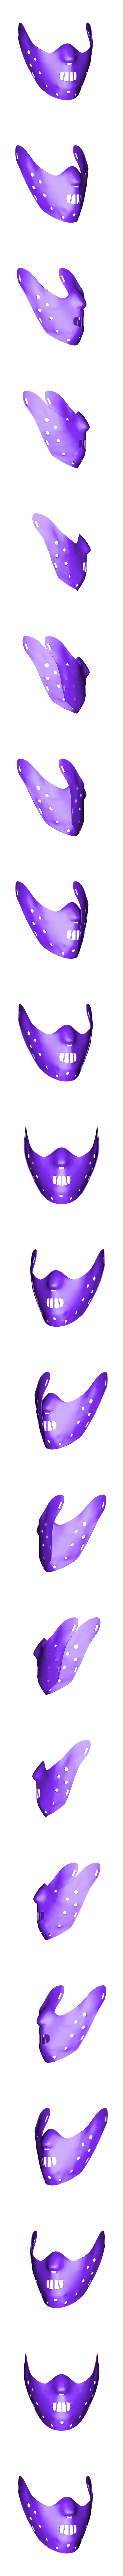 3d-fjp-hannibal-lecter-mask.stl Download OBJ file Hannibal Lecter Mask • Model to 3D print, 3d-fabric-jean-pierre